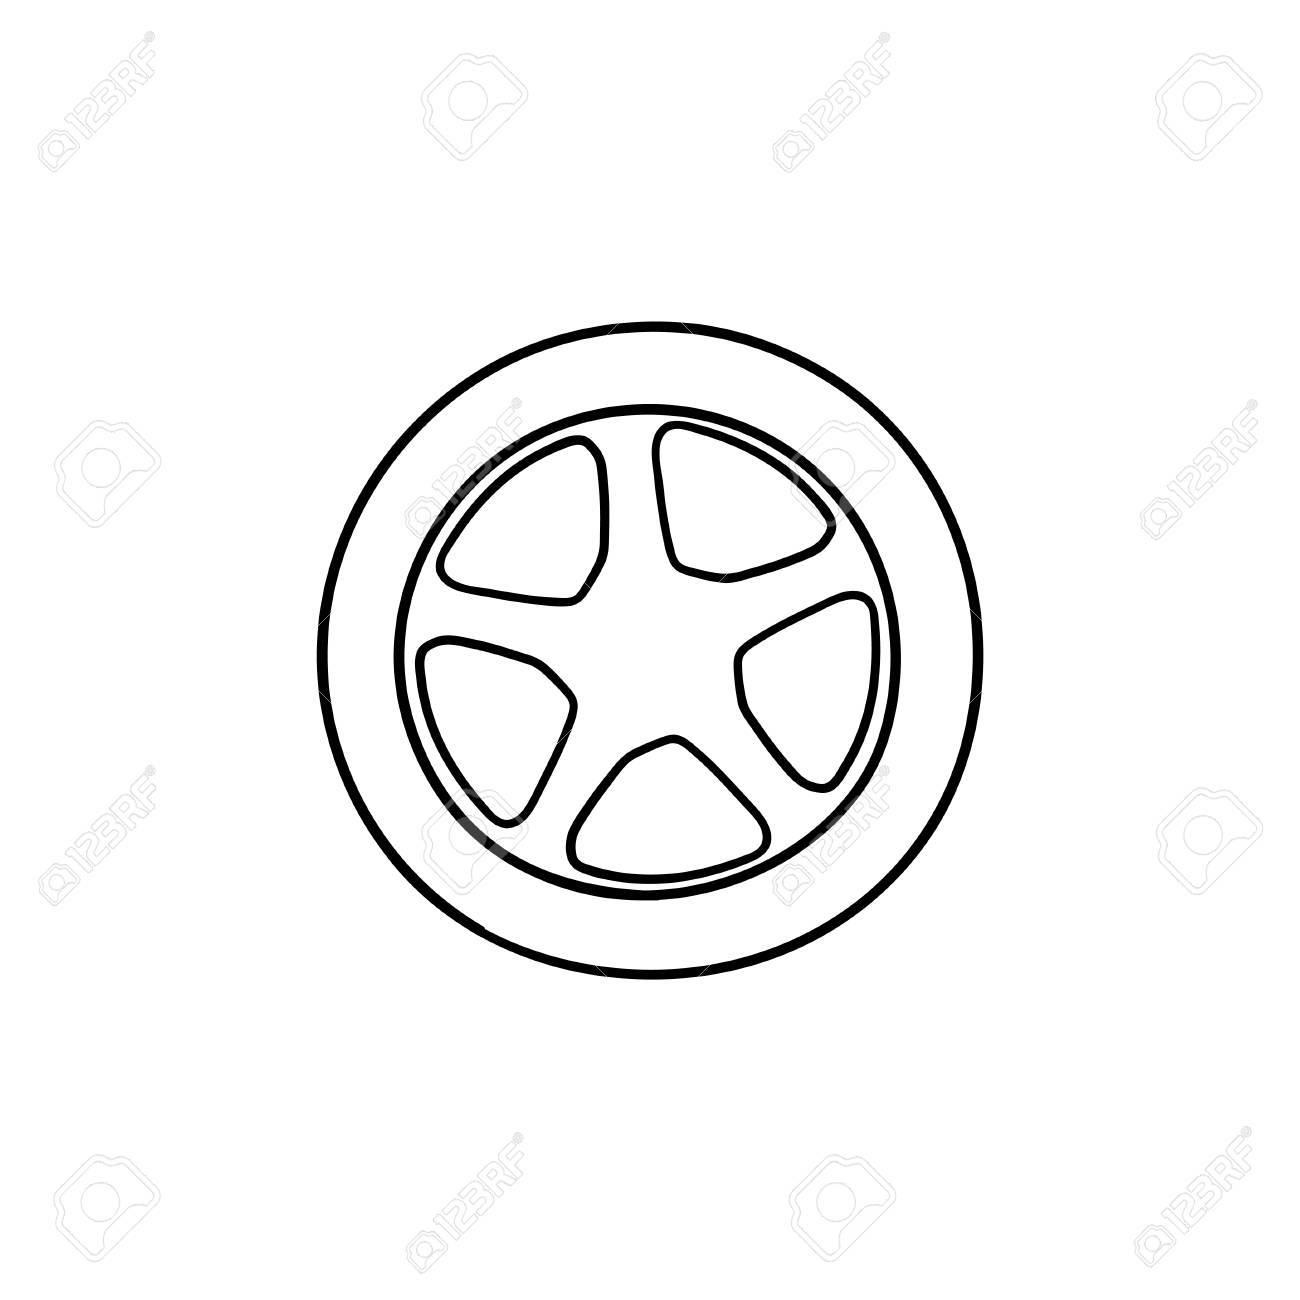 Car Wheel Hand Drawn Outline Doodle Icon Car Tire And Transport Royalty Free Cliparts Vectors And Stock Illustration Image 115641696